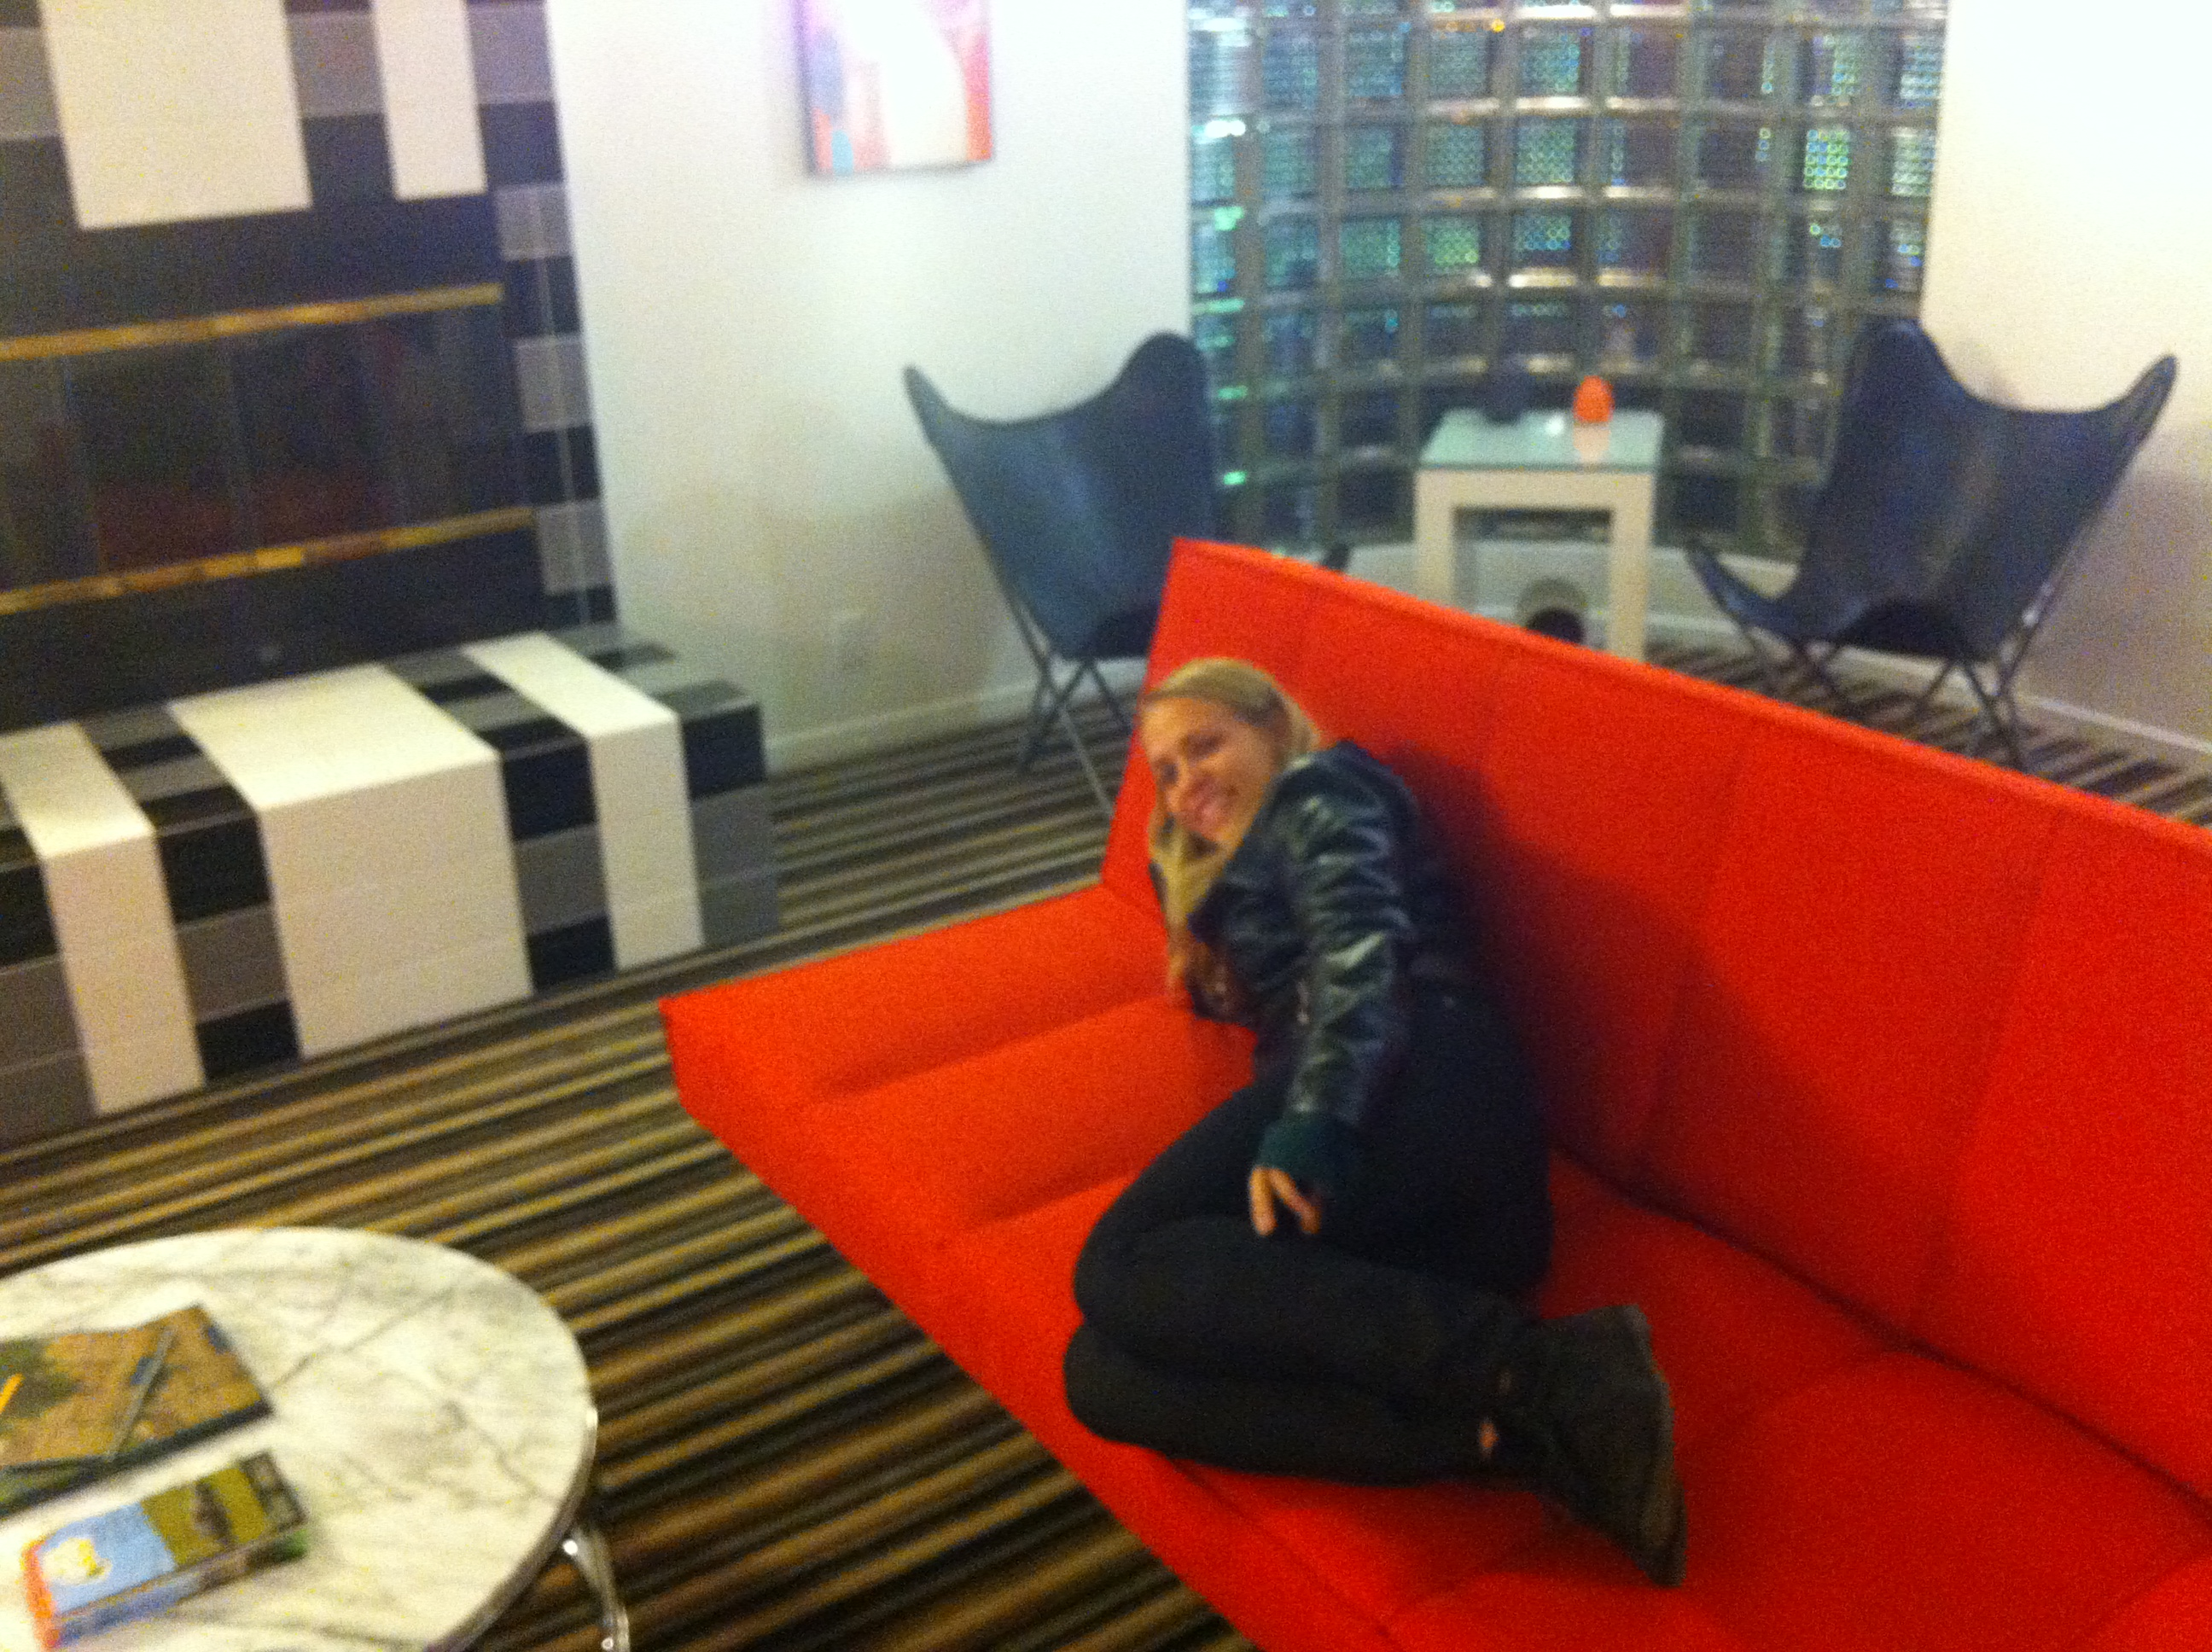 Lounging in the lobby of the Sunburst Calistoga